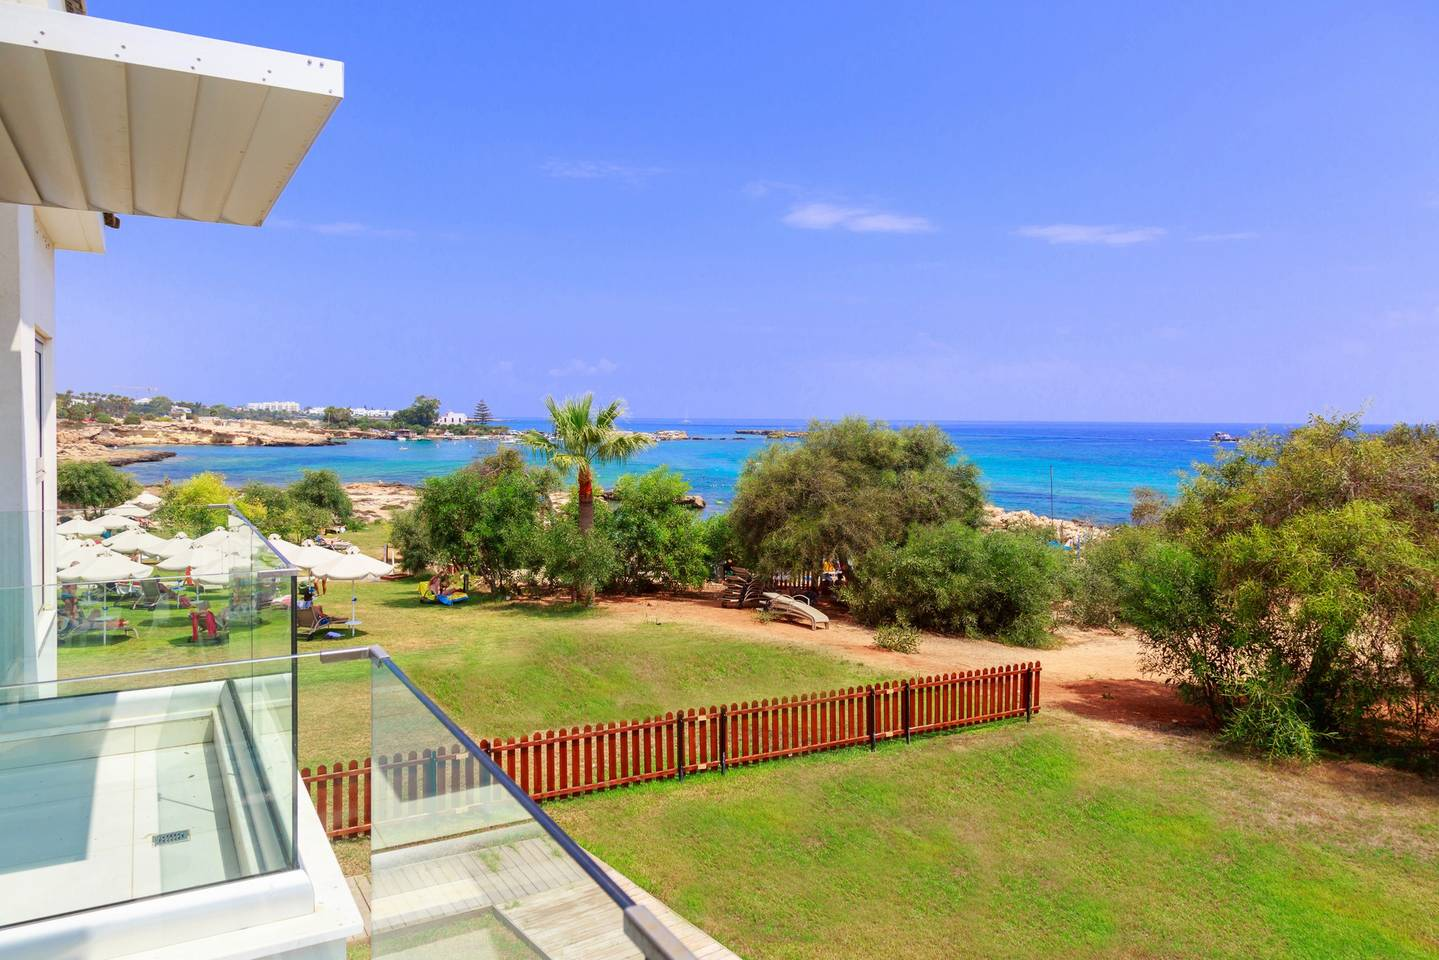 Apartment 2 Bed Luxury Apt with Large Communal Pool A1-101 photo 25674978